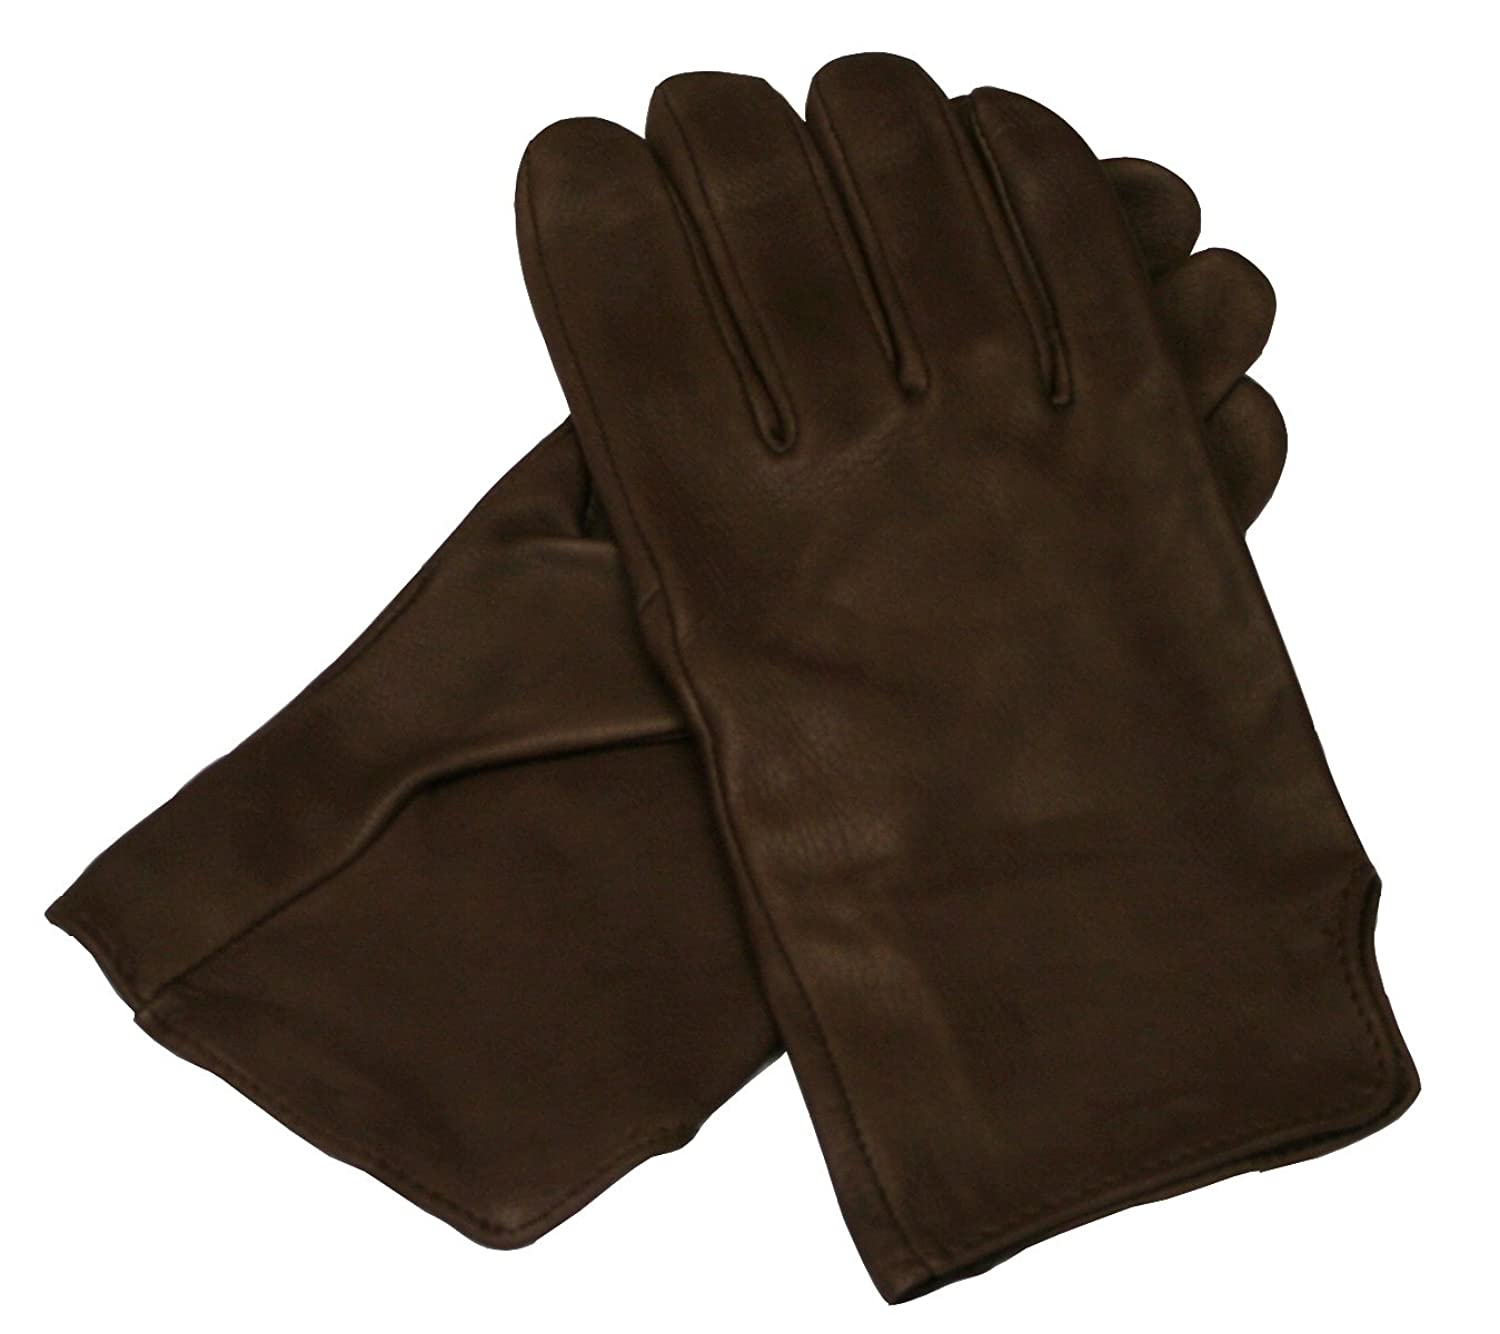 Victorian Men's Clothing Victorian Leather Brown or Black Dress Gloves $52.95 AT vintagedancer.com